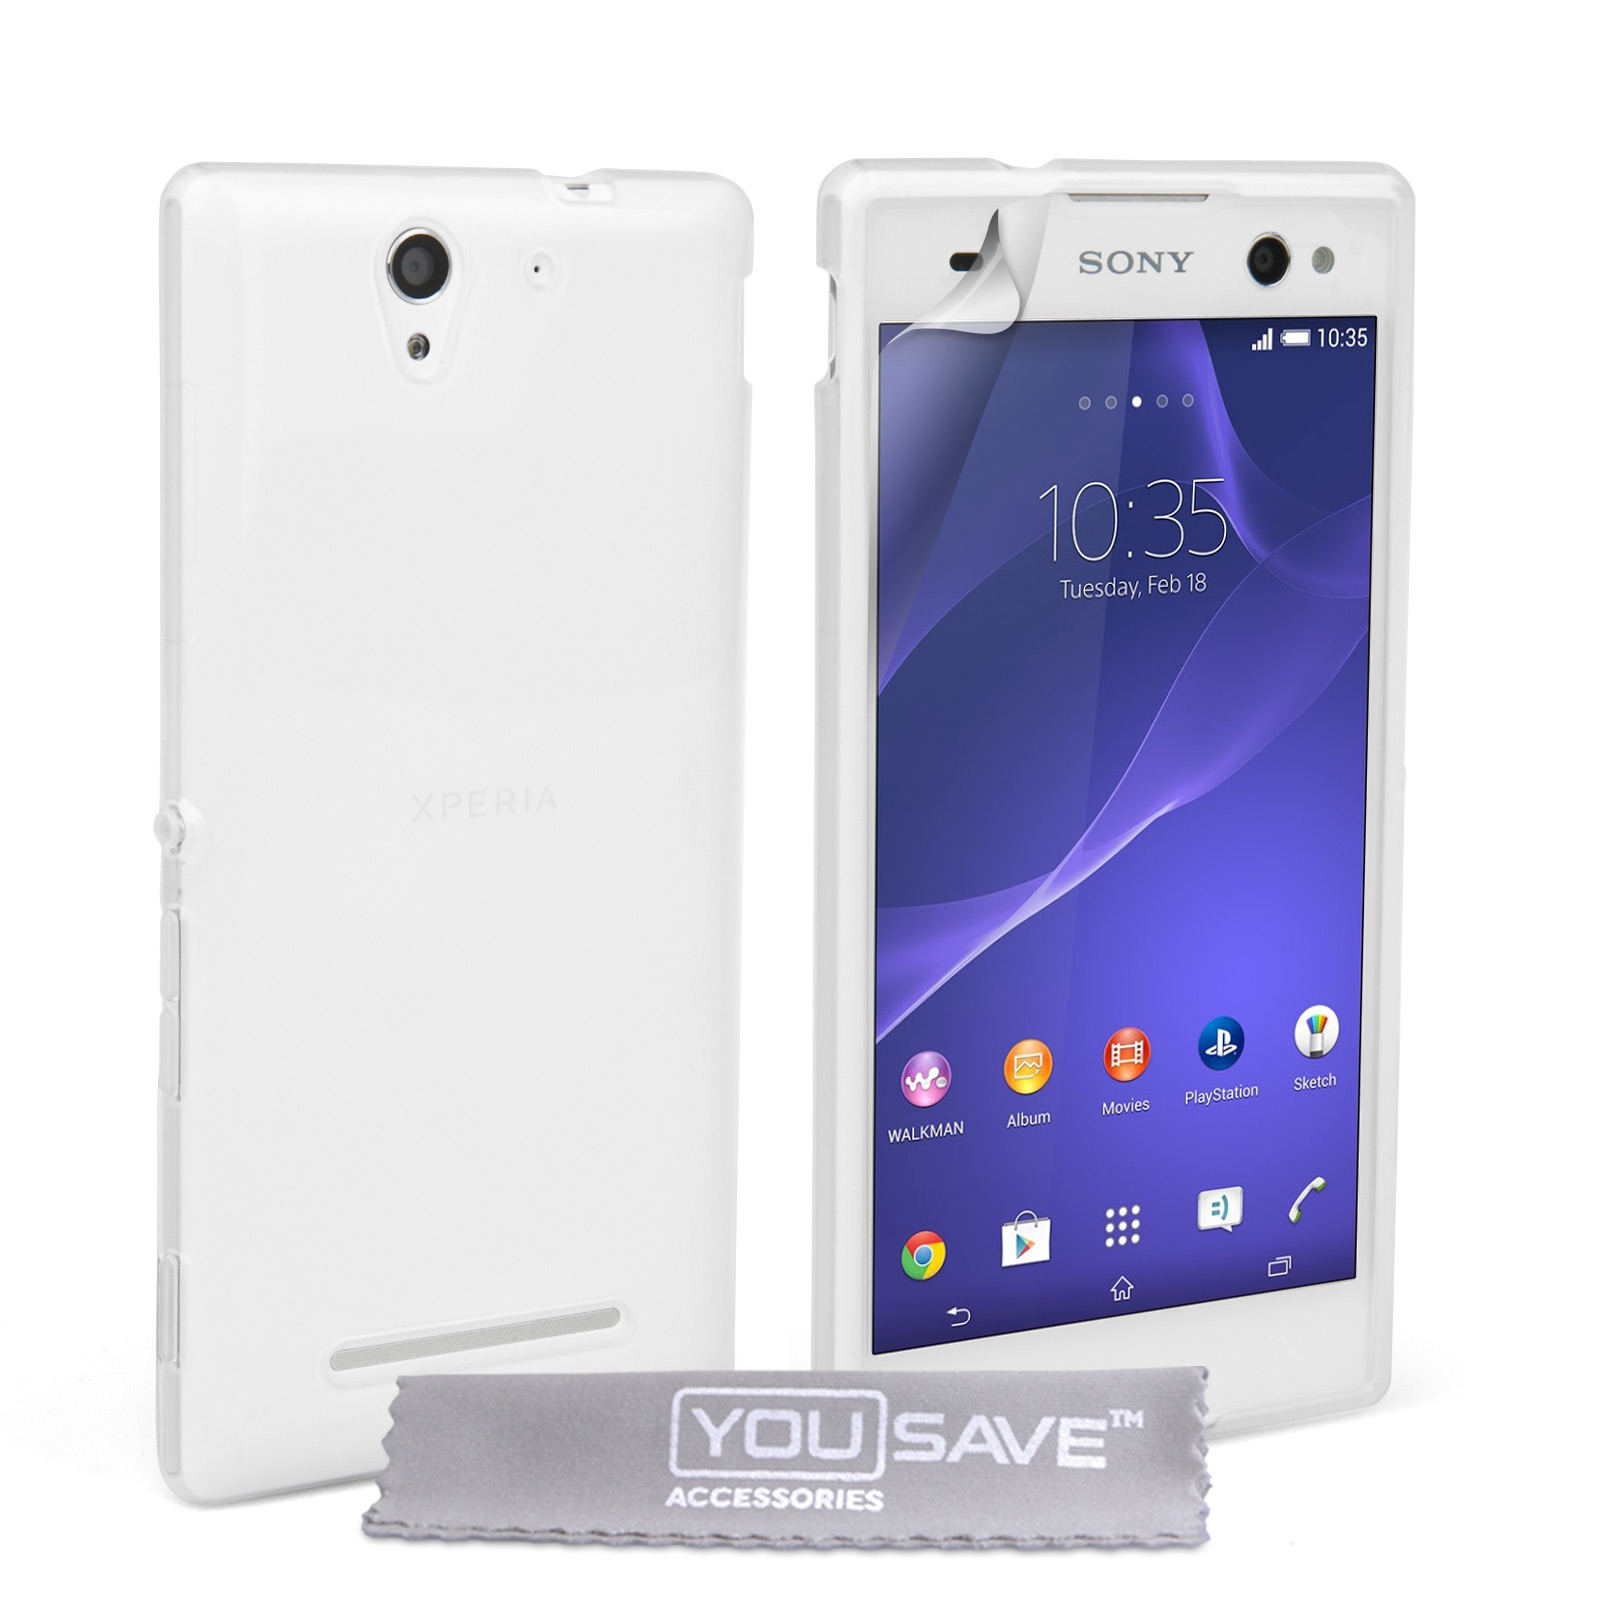 YouSave Accessories Sony Xperia C3 Silicone Gel Case - Clear